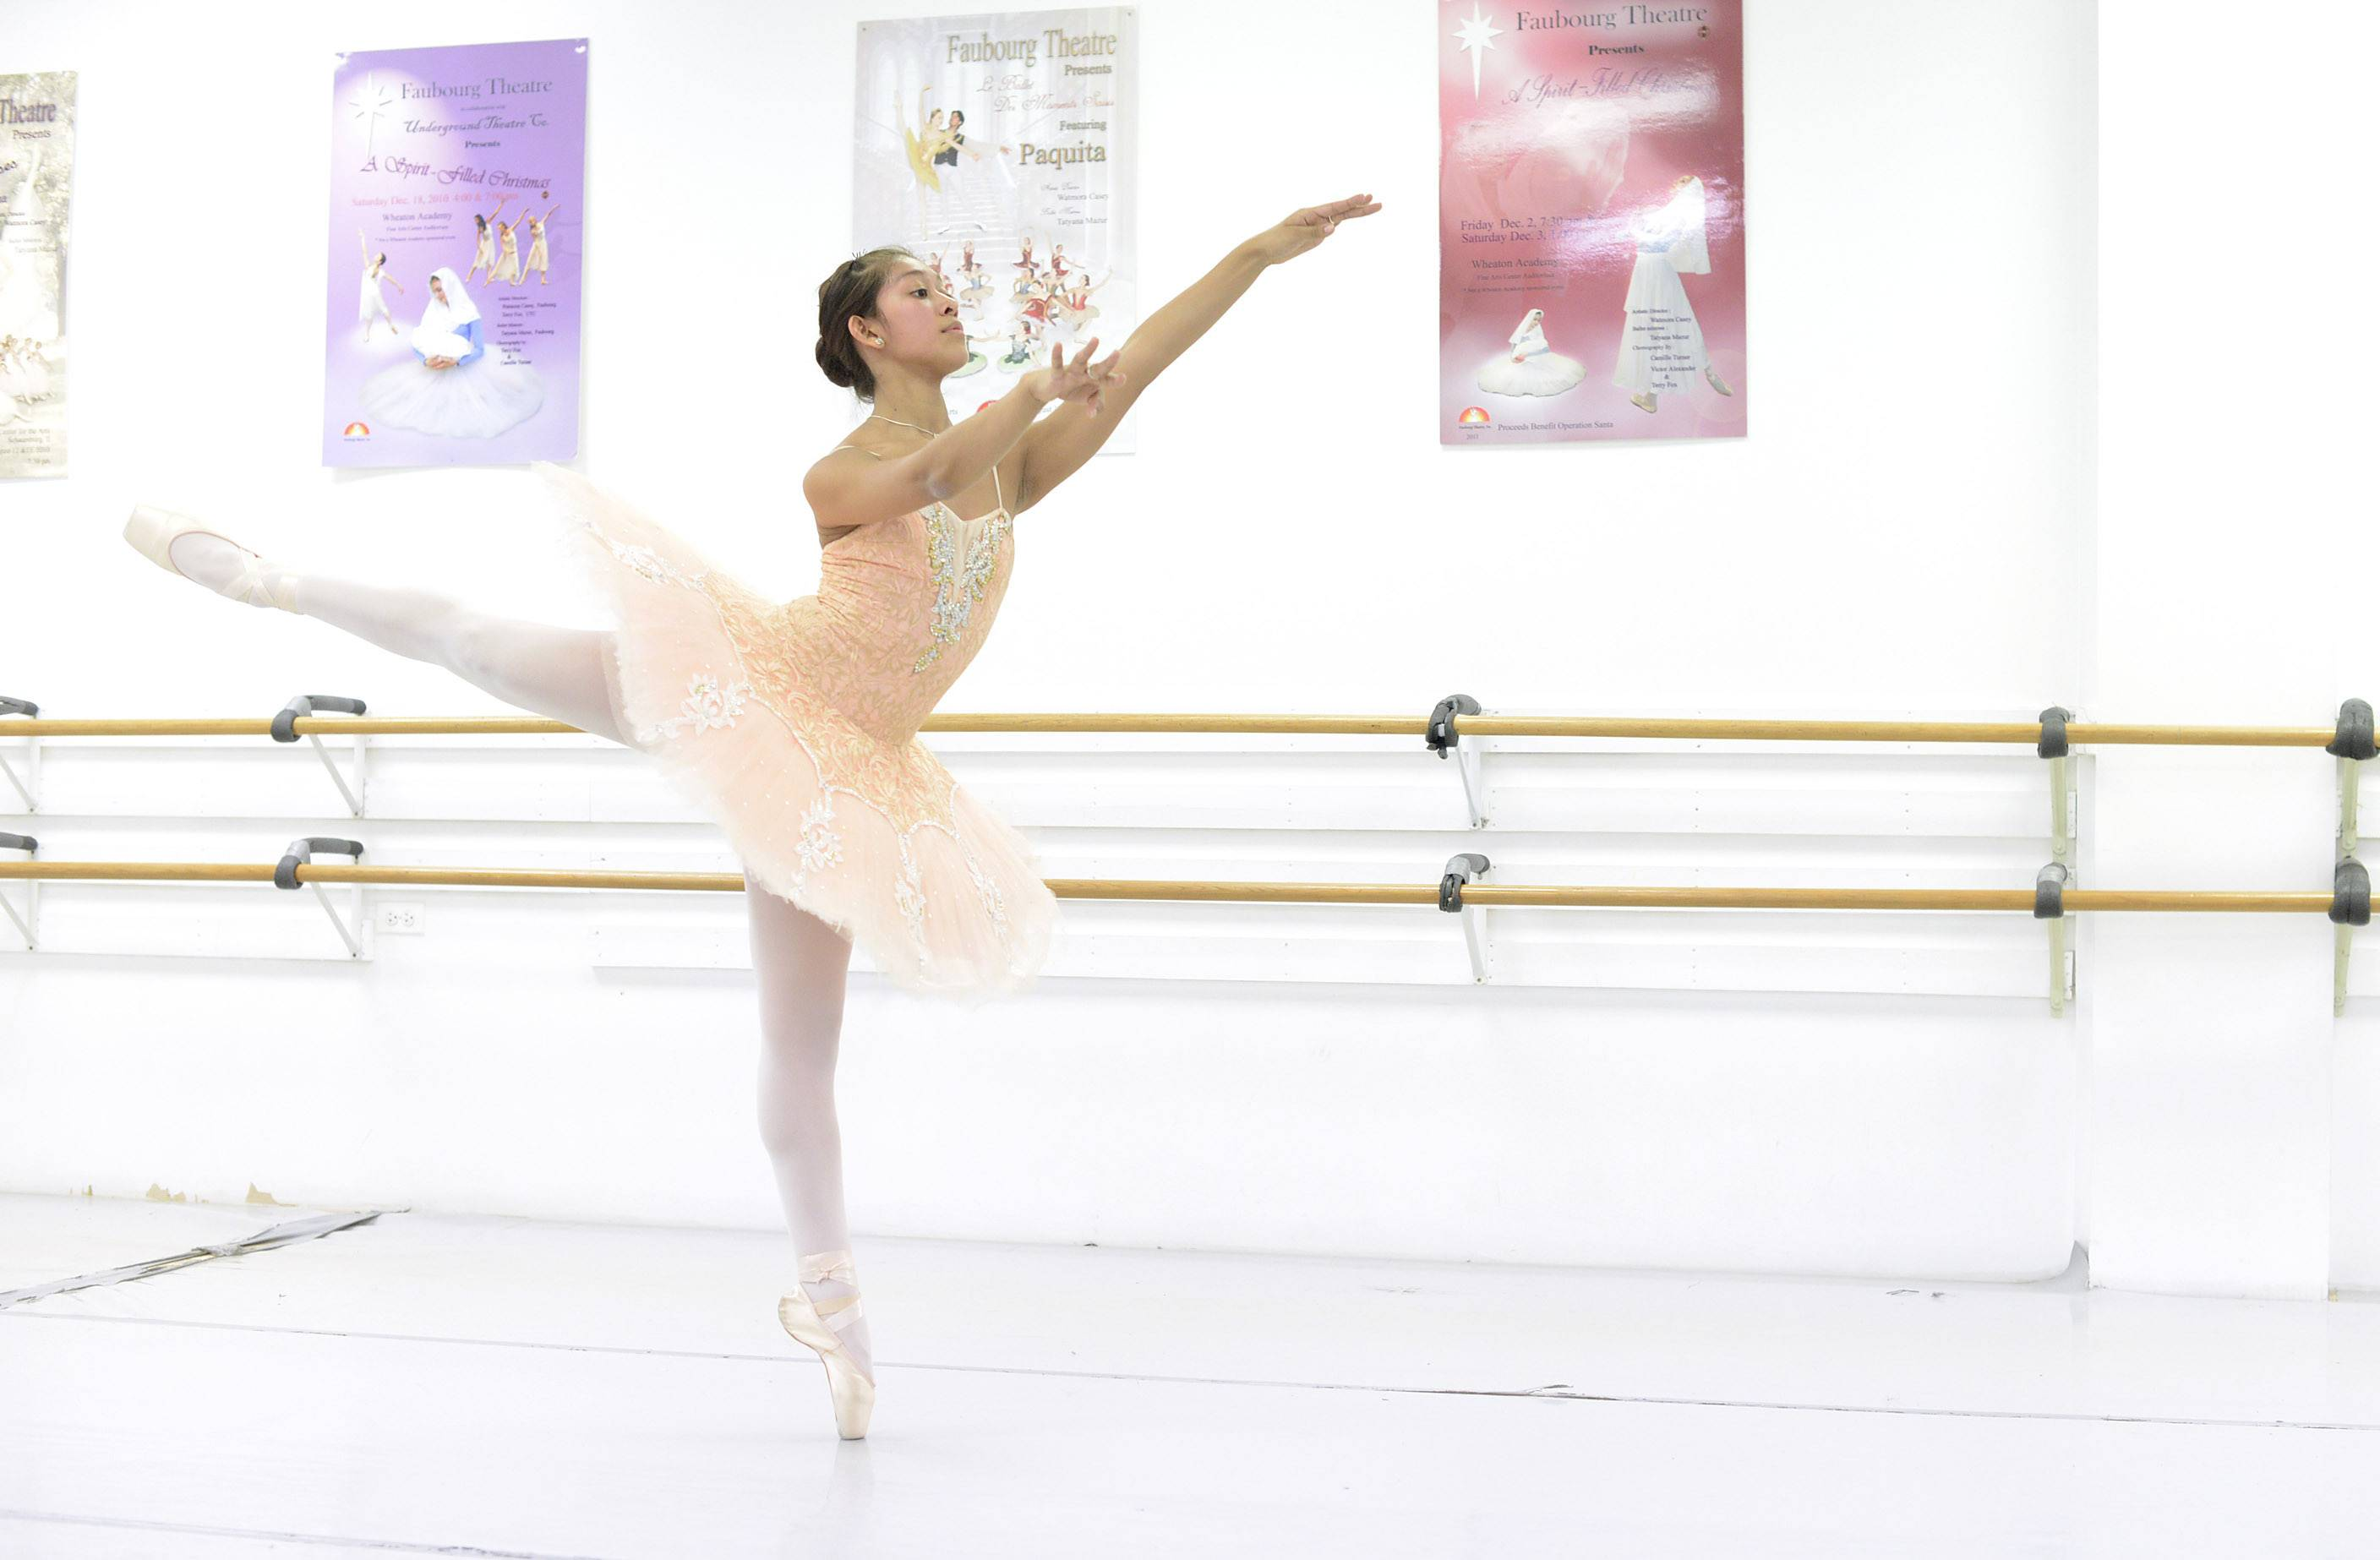 Dancer Jasmine Getz of Sleepy Hollow, a student at Hampshire High School, practices at Faubourg School of Ballet in Hanover Park. In December, Jasmine became the first American to win a world title in her age group in pointe/ballet at the International Dance Organization's world championships held in Poland.